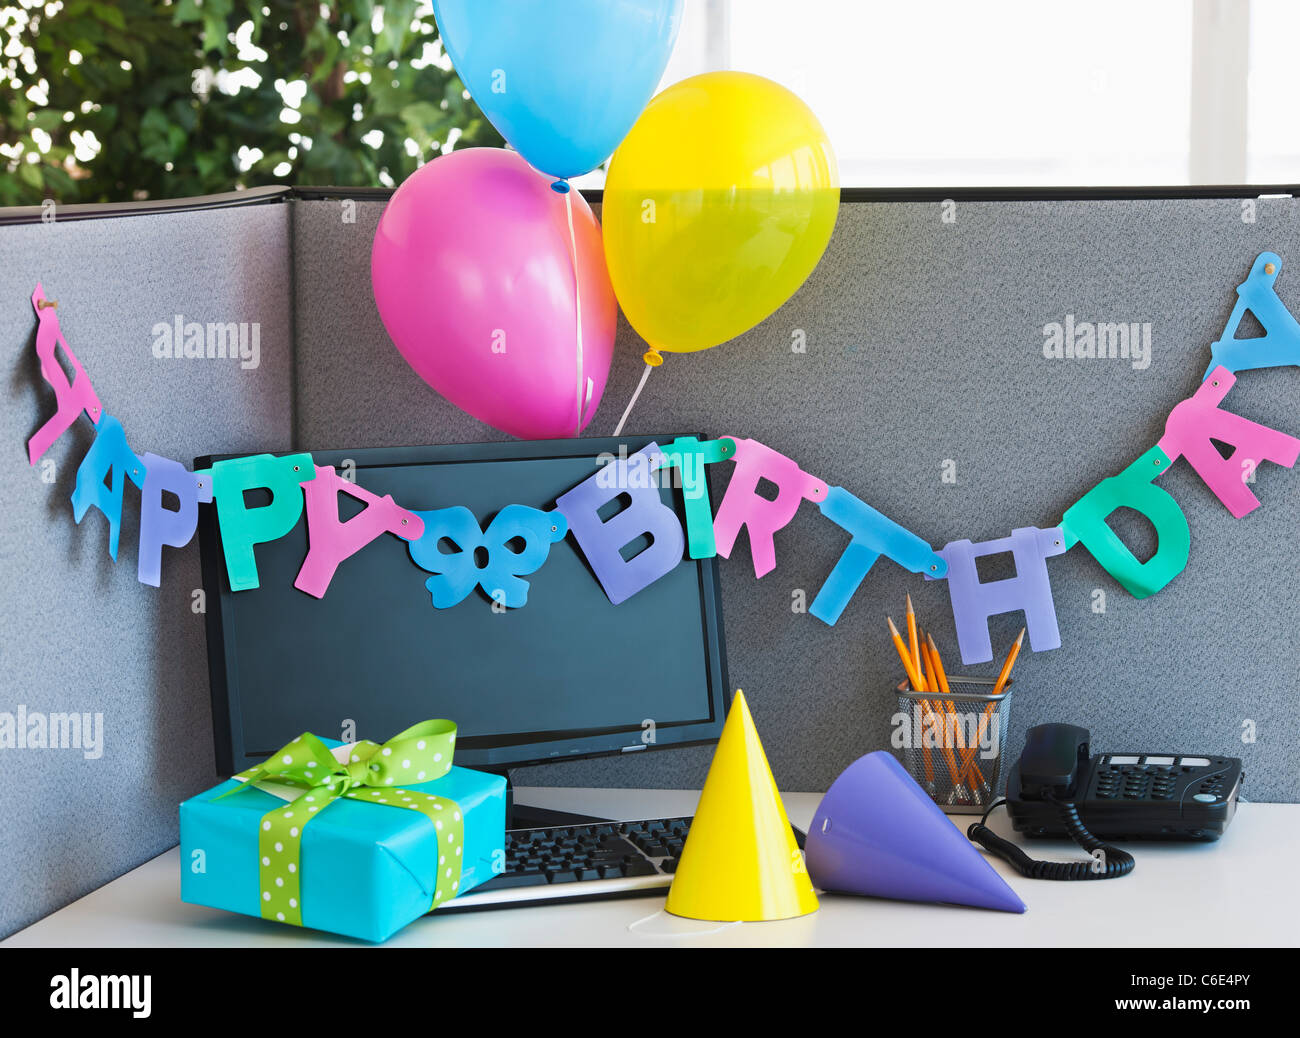 office birthday decorations. usa, new jersey, jersey city, close up of birthday decorations on office desk o